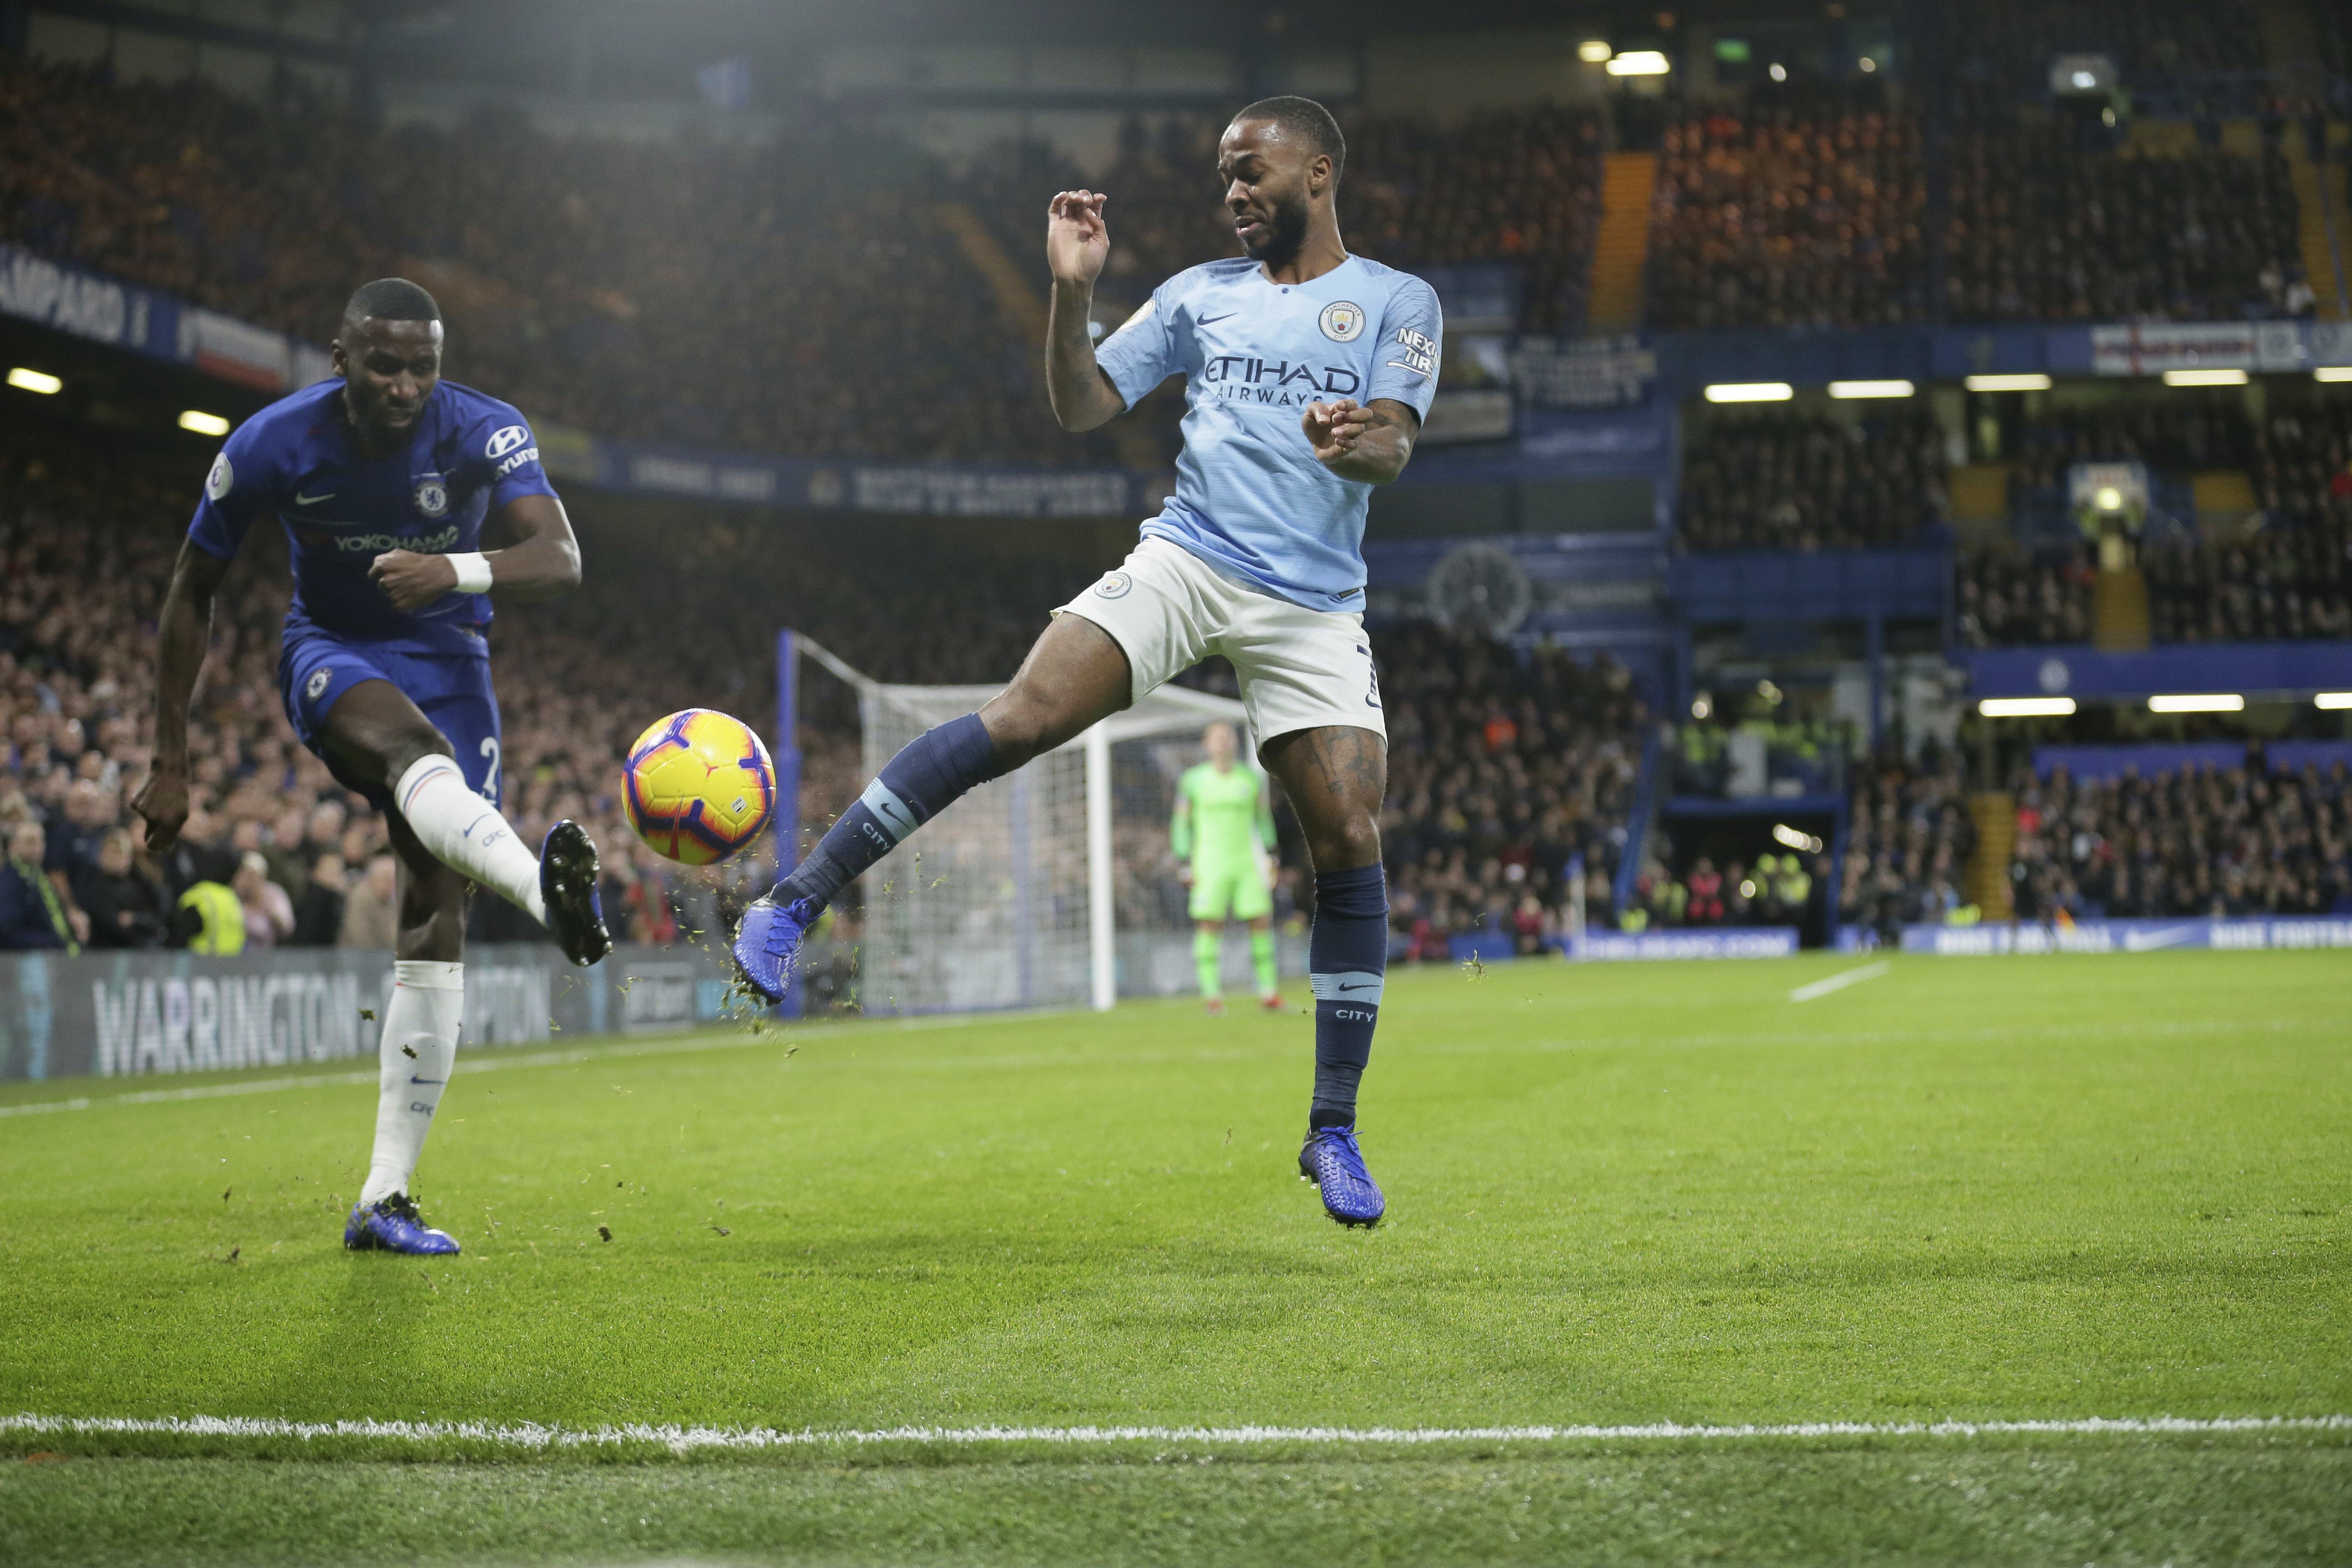 Police investigate whether City's Sterling racially abused